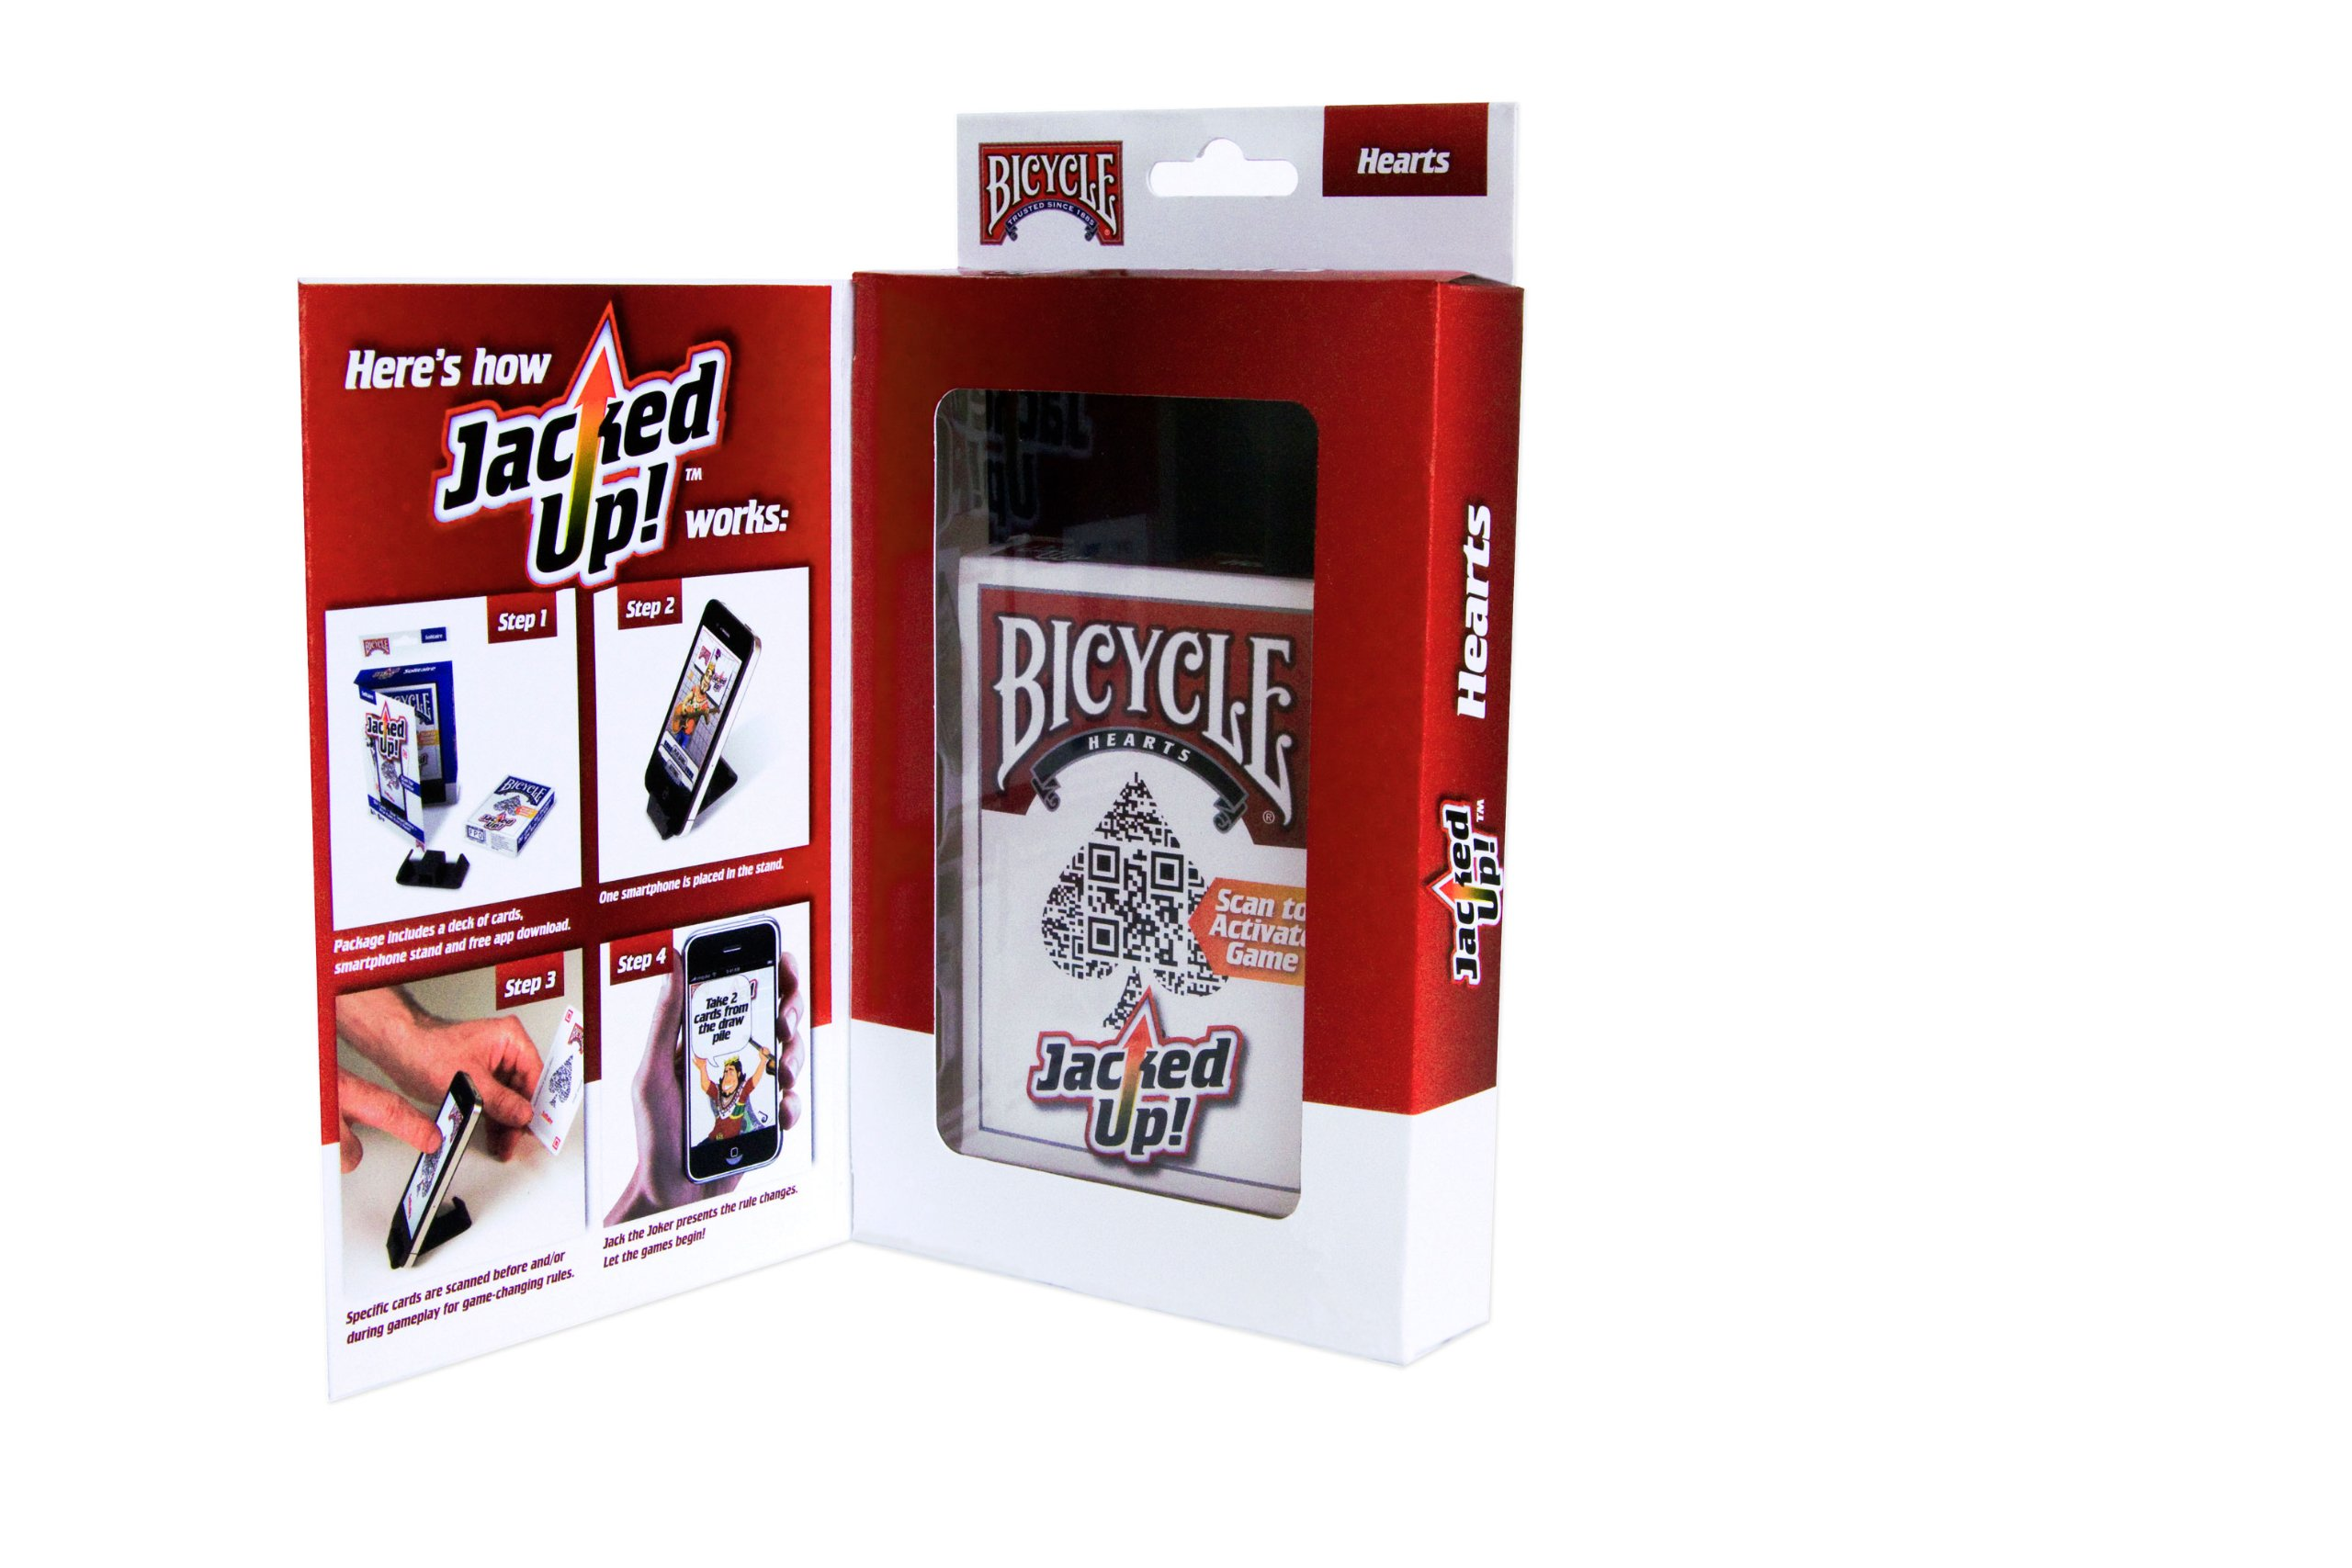 Bicycle Jacked Up! Hearts Playing Cards